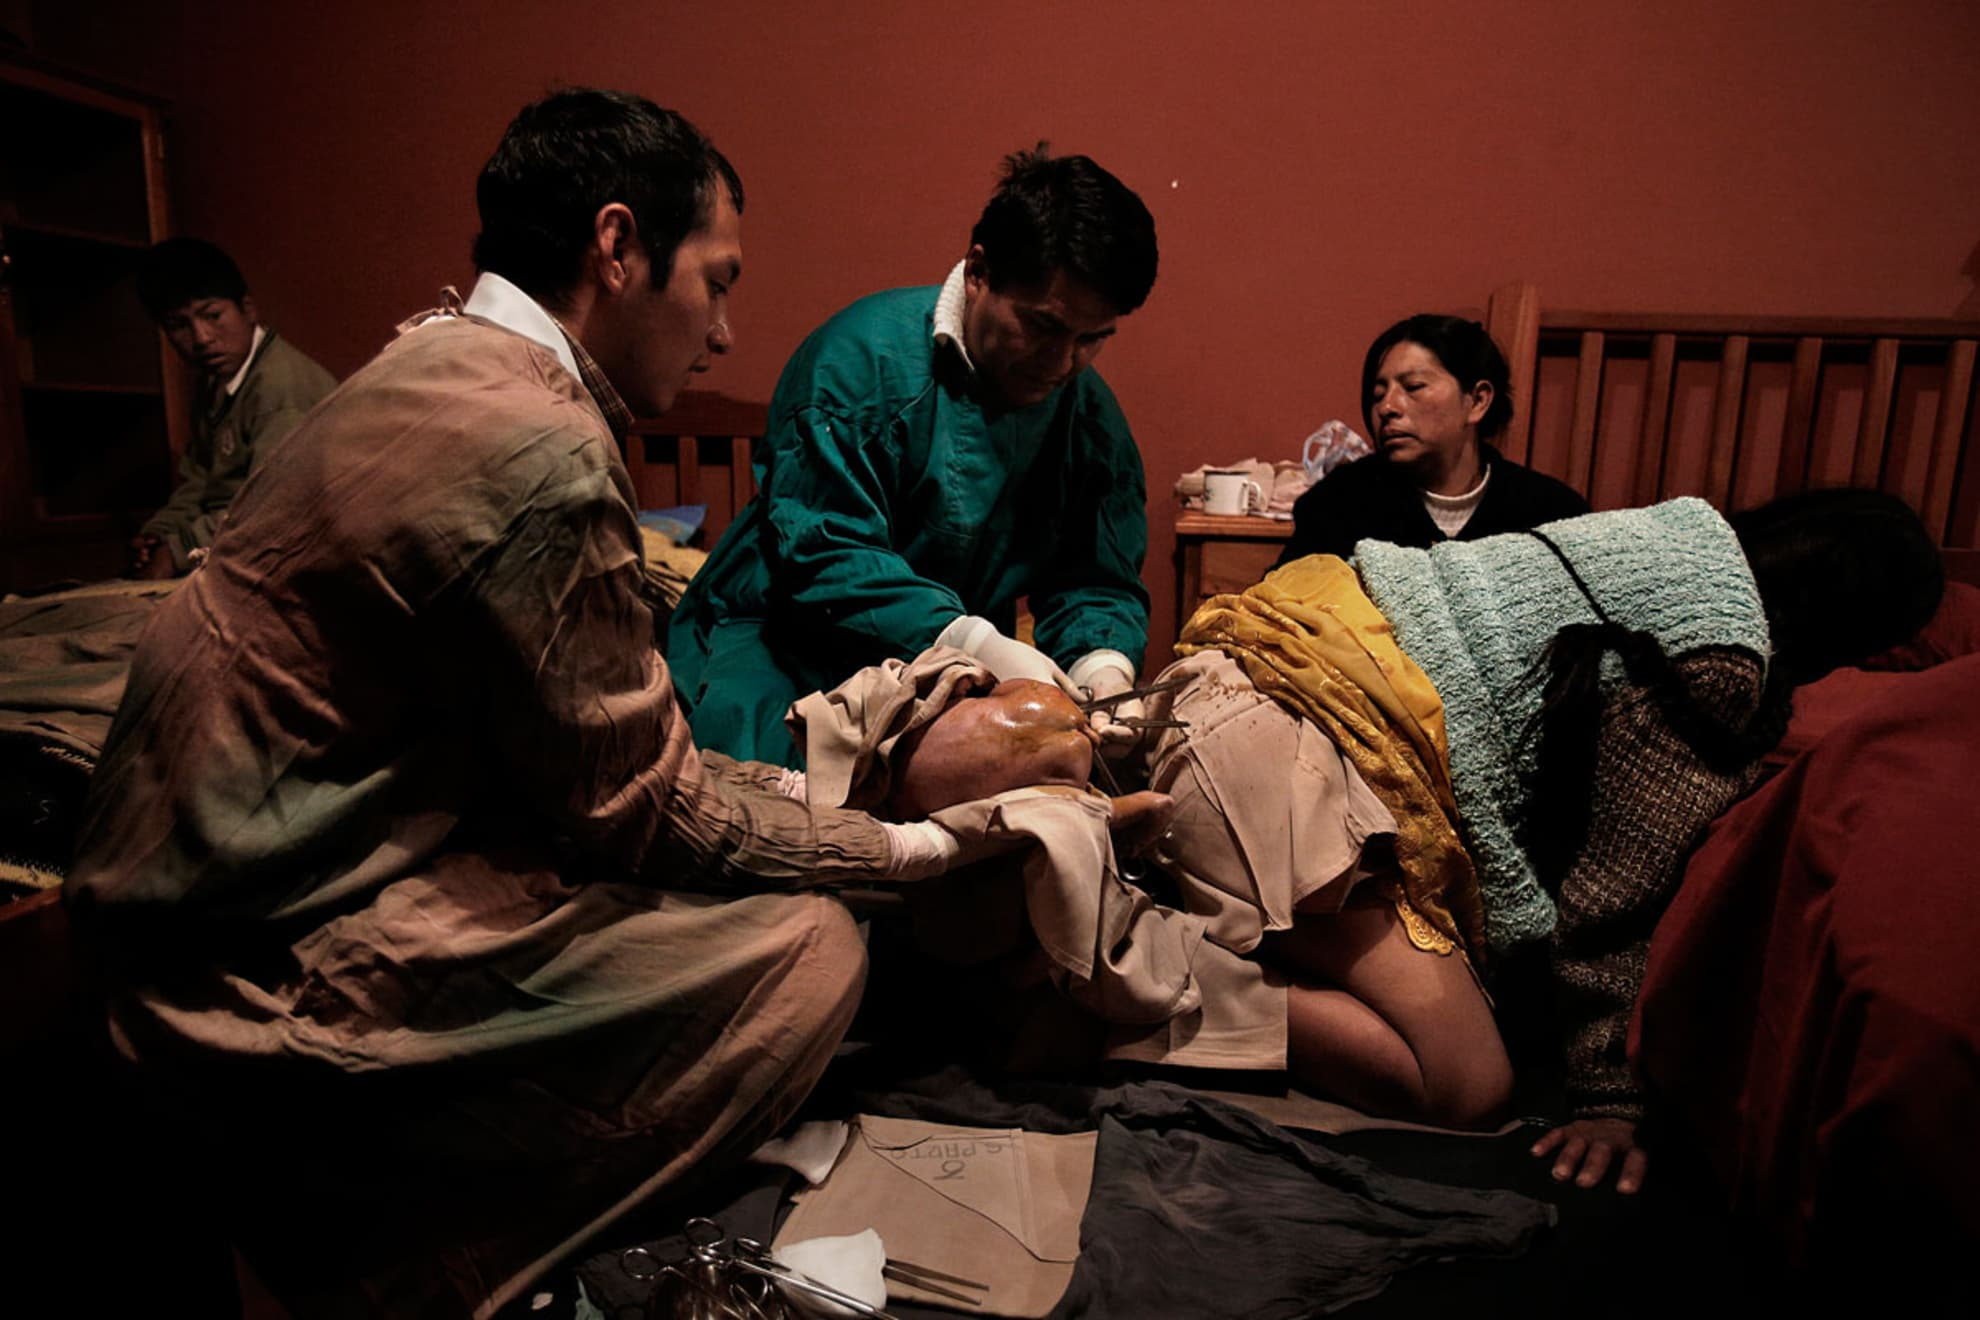 Ceferina Siñani Chiparer, 31 years old, giving birth in the cultural adaptation room of the Patacamaya hospital with the help of medical personnel. Her son Jose Armando, 12 years old, watches.